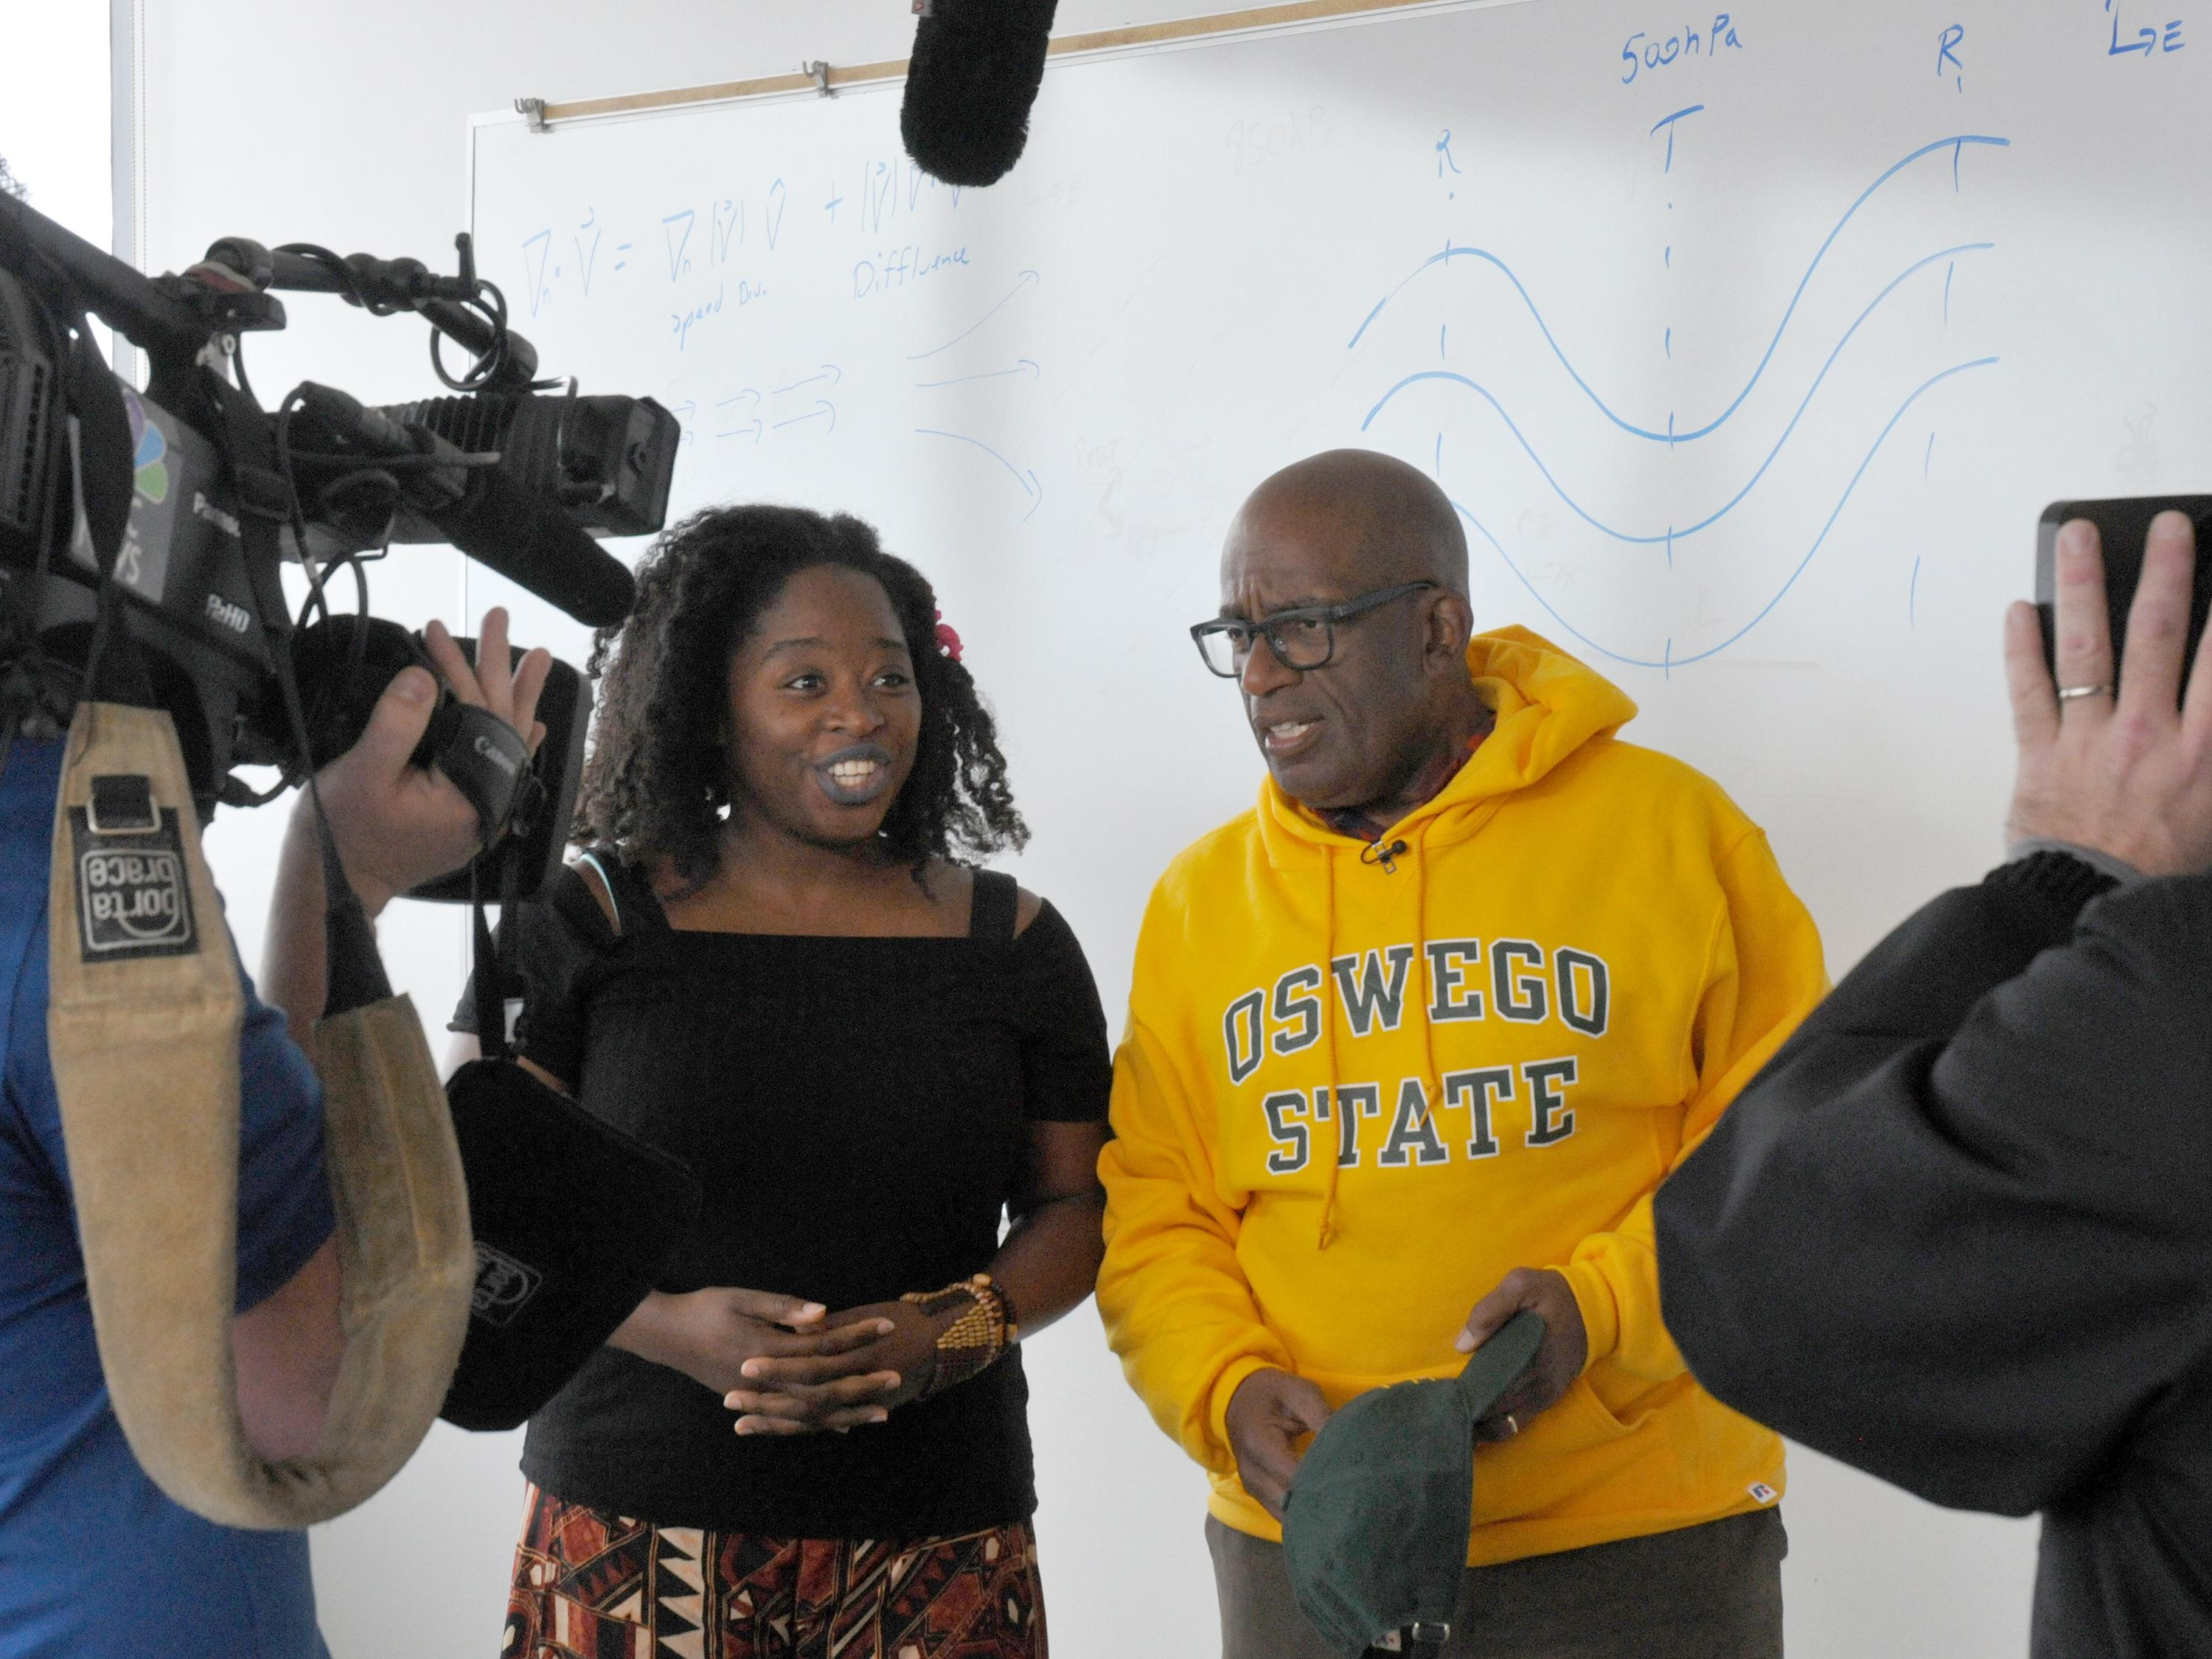 Al Roker visits a meteorology classroom at SUNY Oswego during 2017 Rokerthon